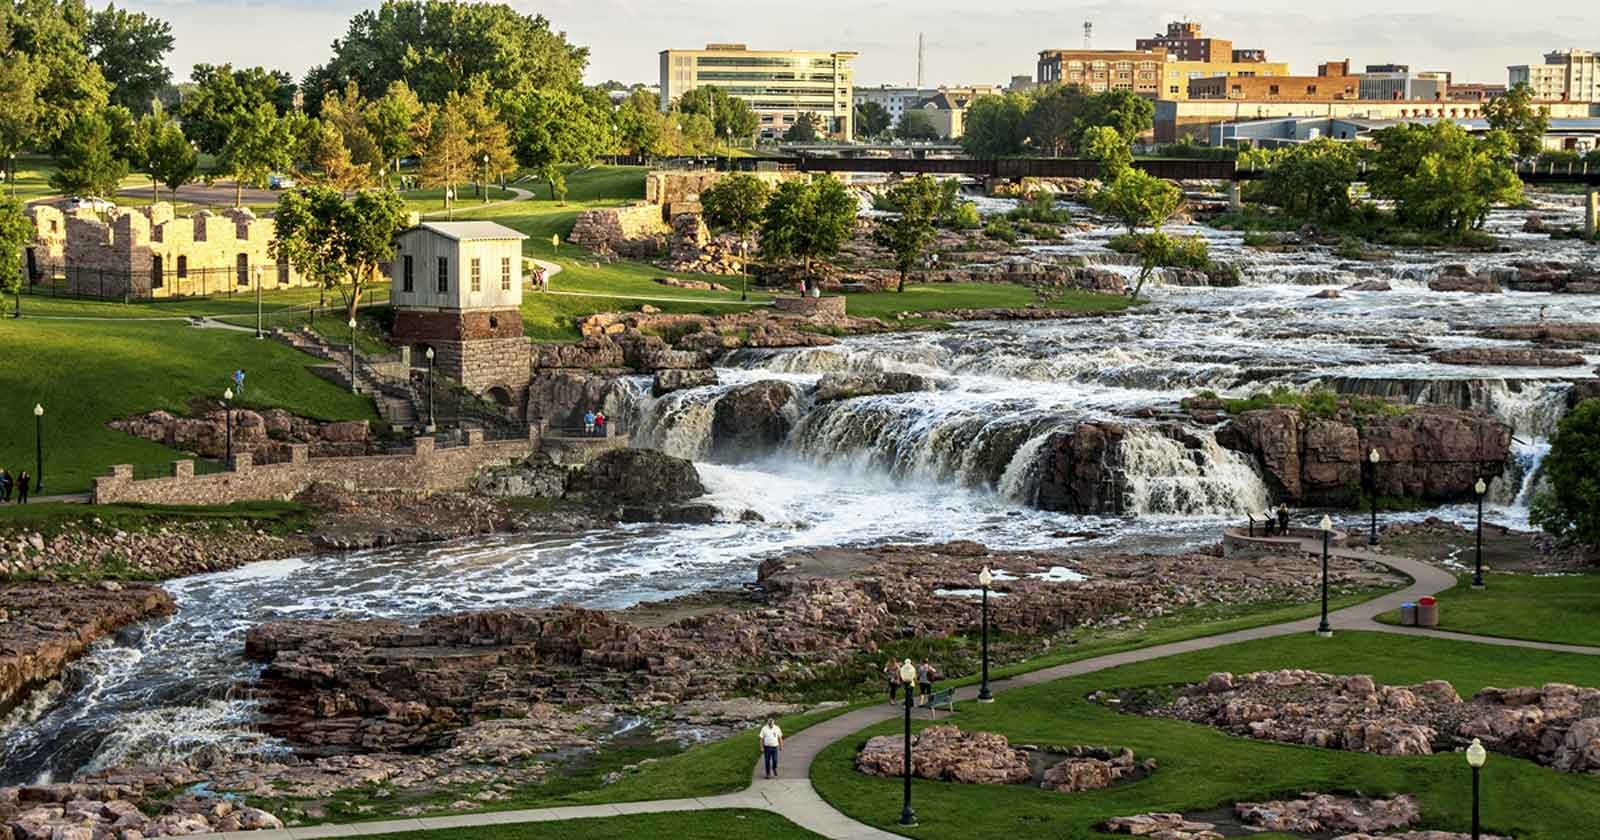 Best School Districts in Sioux Falls